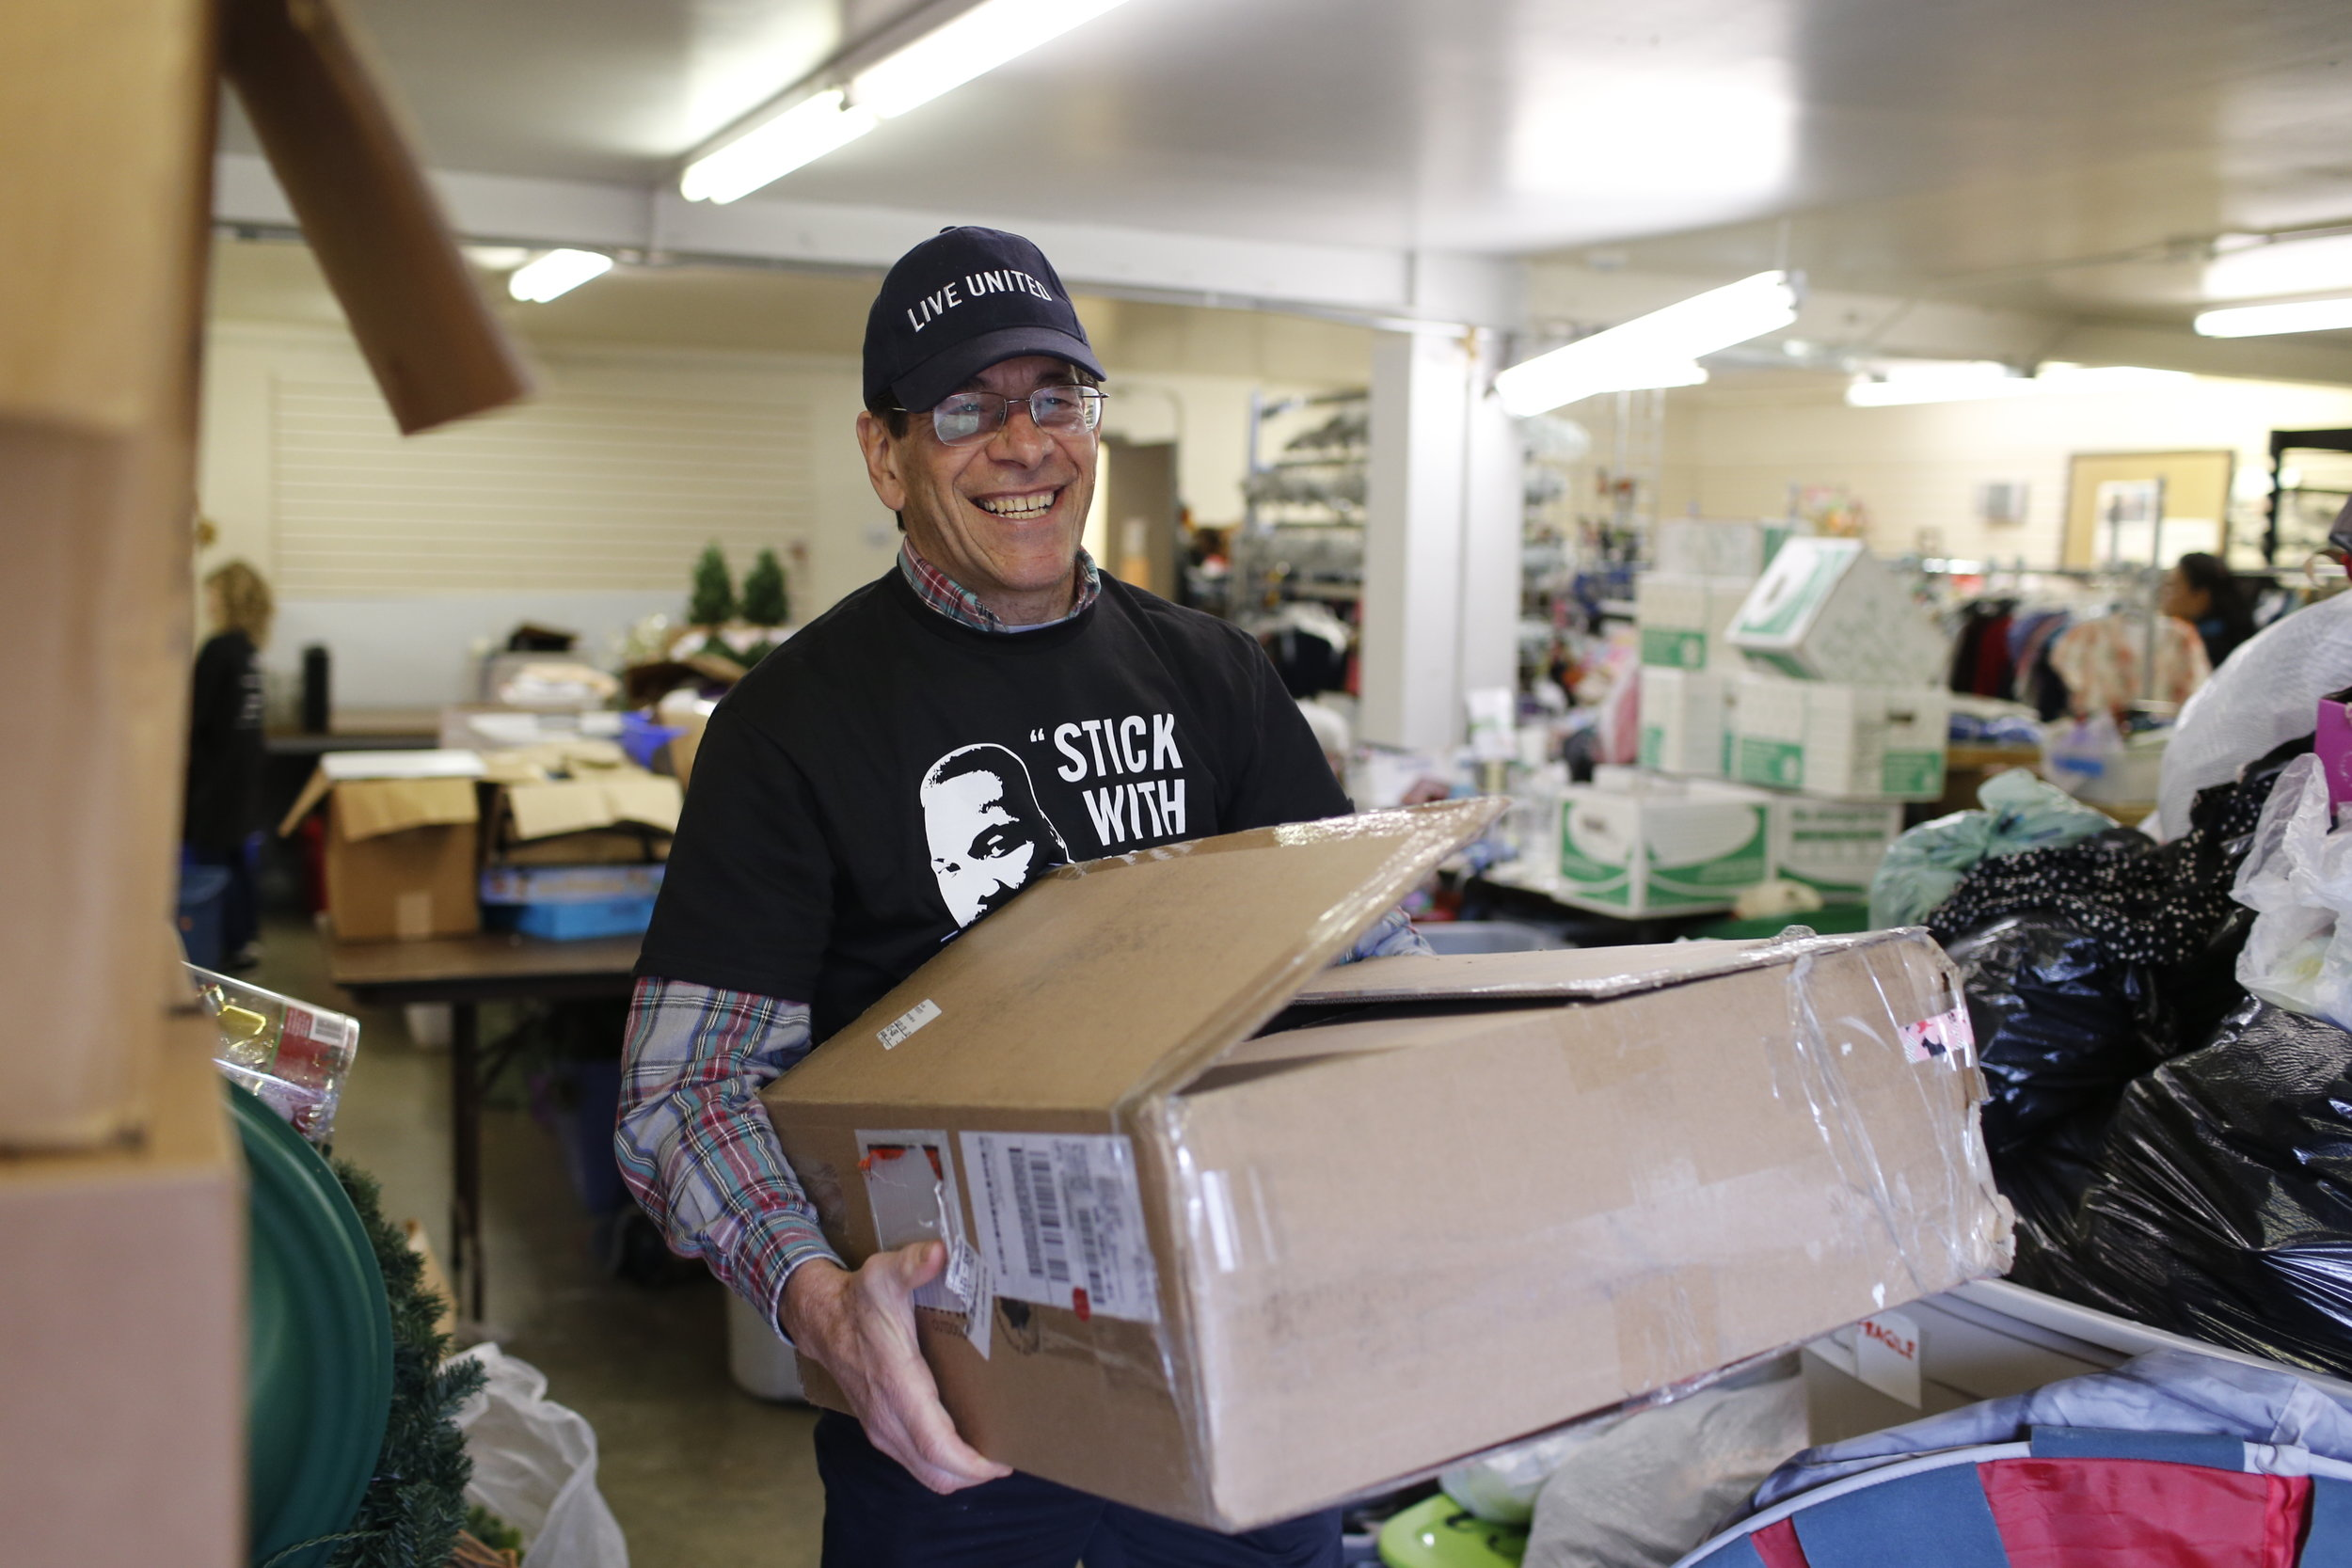 United Way of King County CEO, Jon Fine volunteering at the Jubilee REACH Thrift Store on 2018 MLK Day of Service